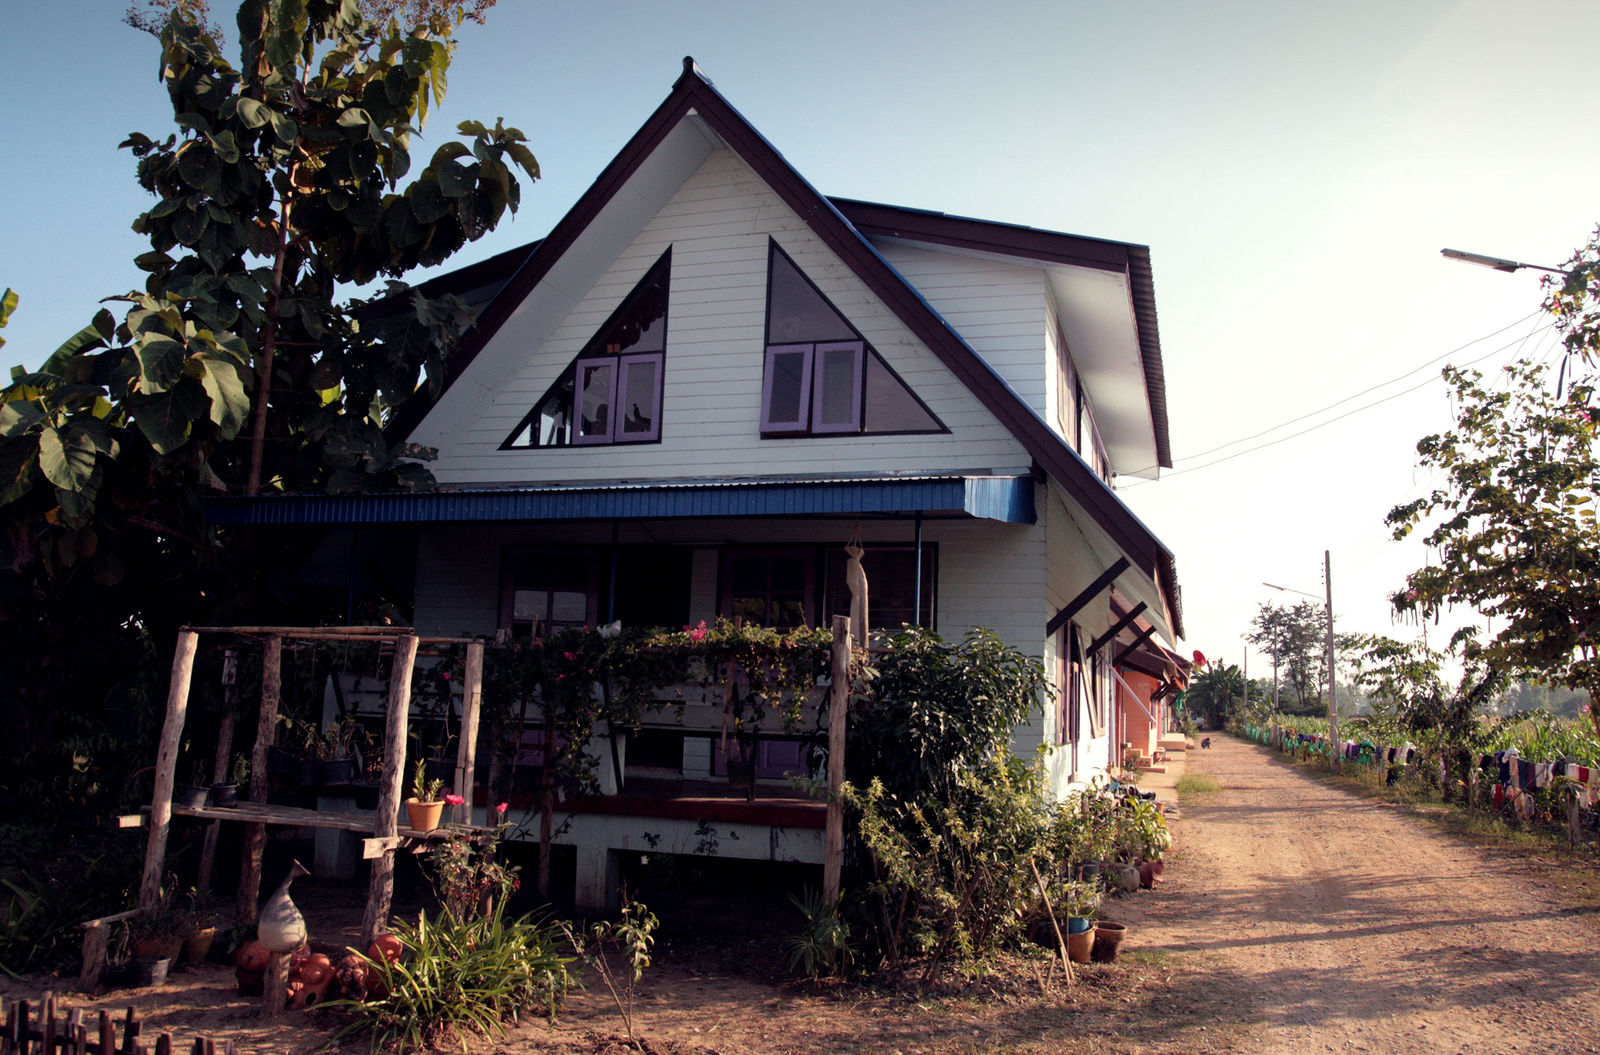 Video Thumbnail - Photography taken in Thailand of one of the Not For Sale village's house.